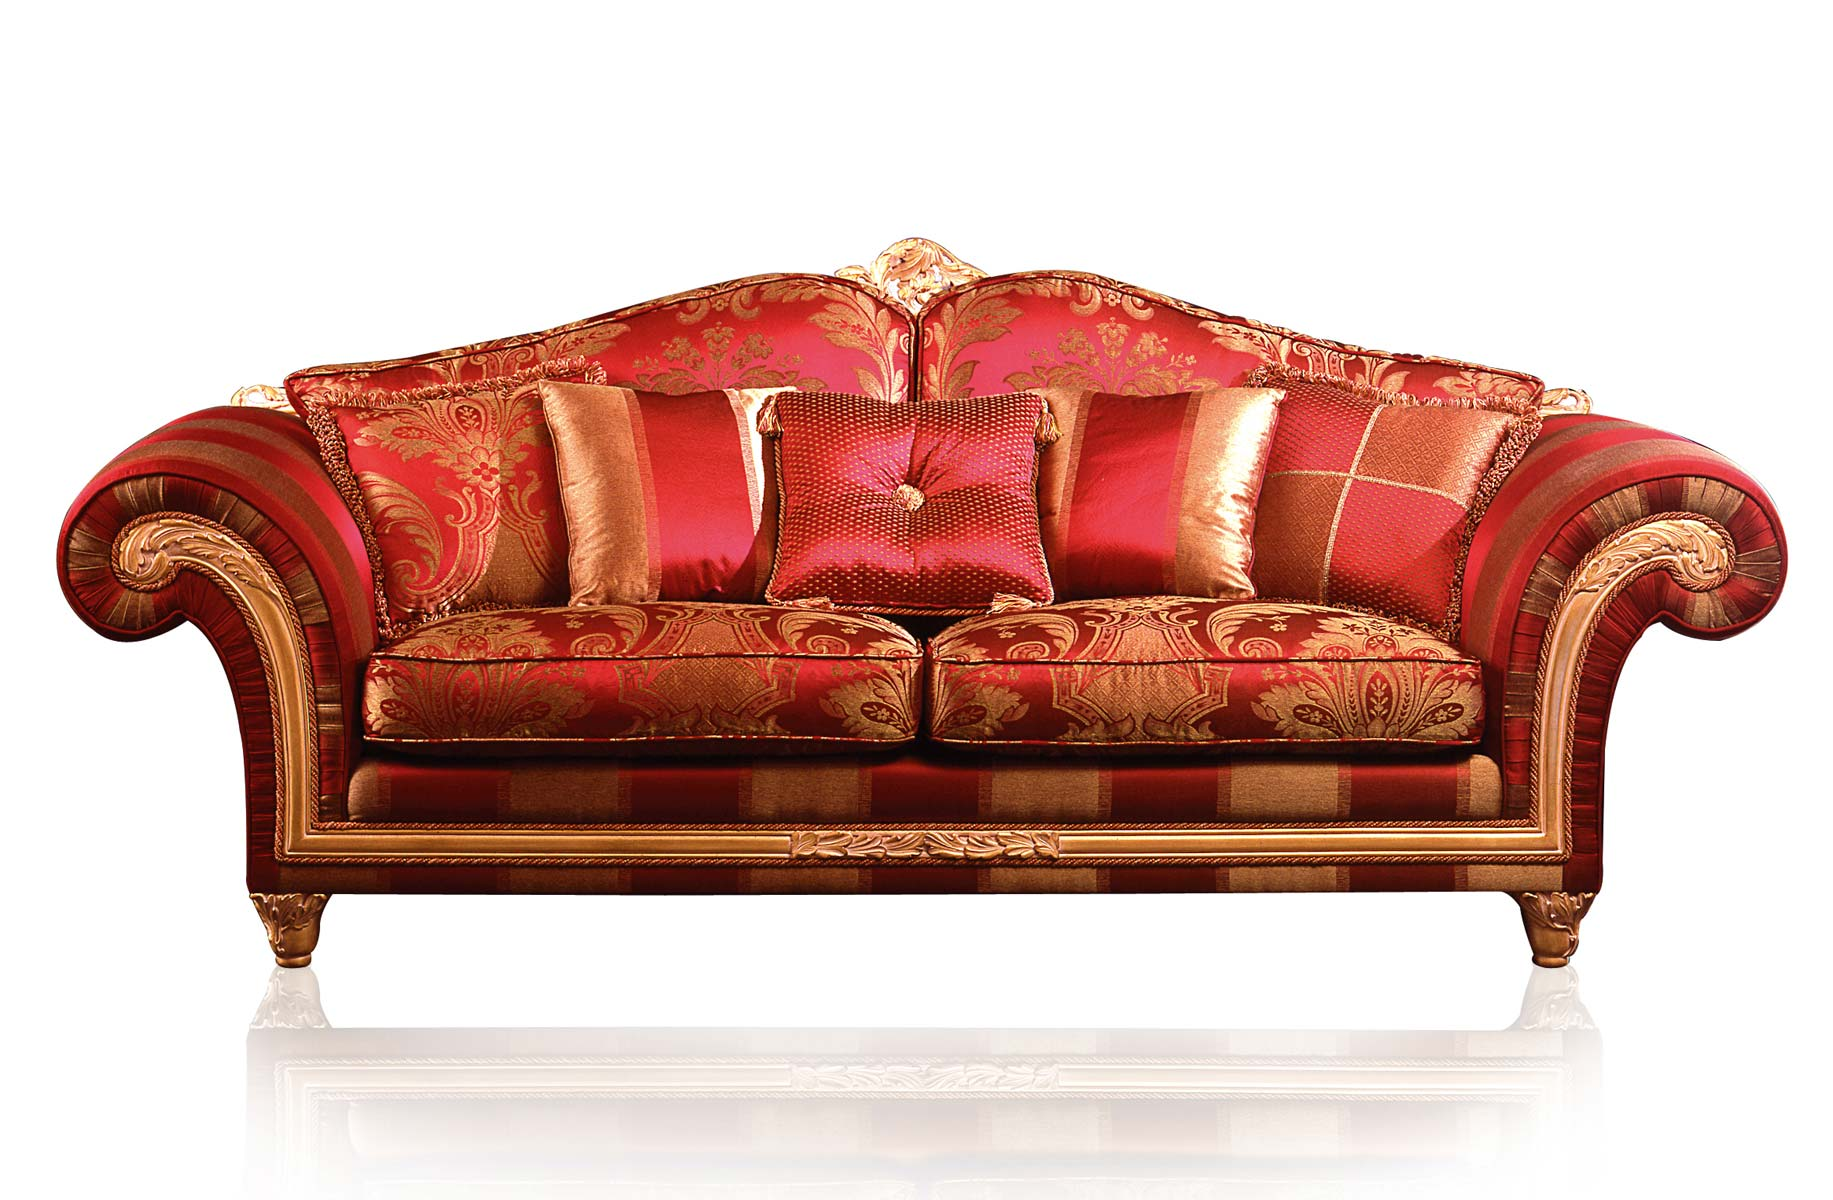 Luxury classic sofa and armchairs imperial by vimercati for Furniture sofas and couches